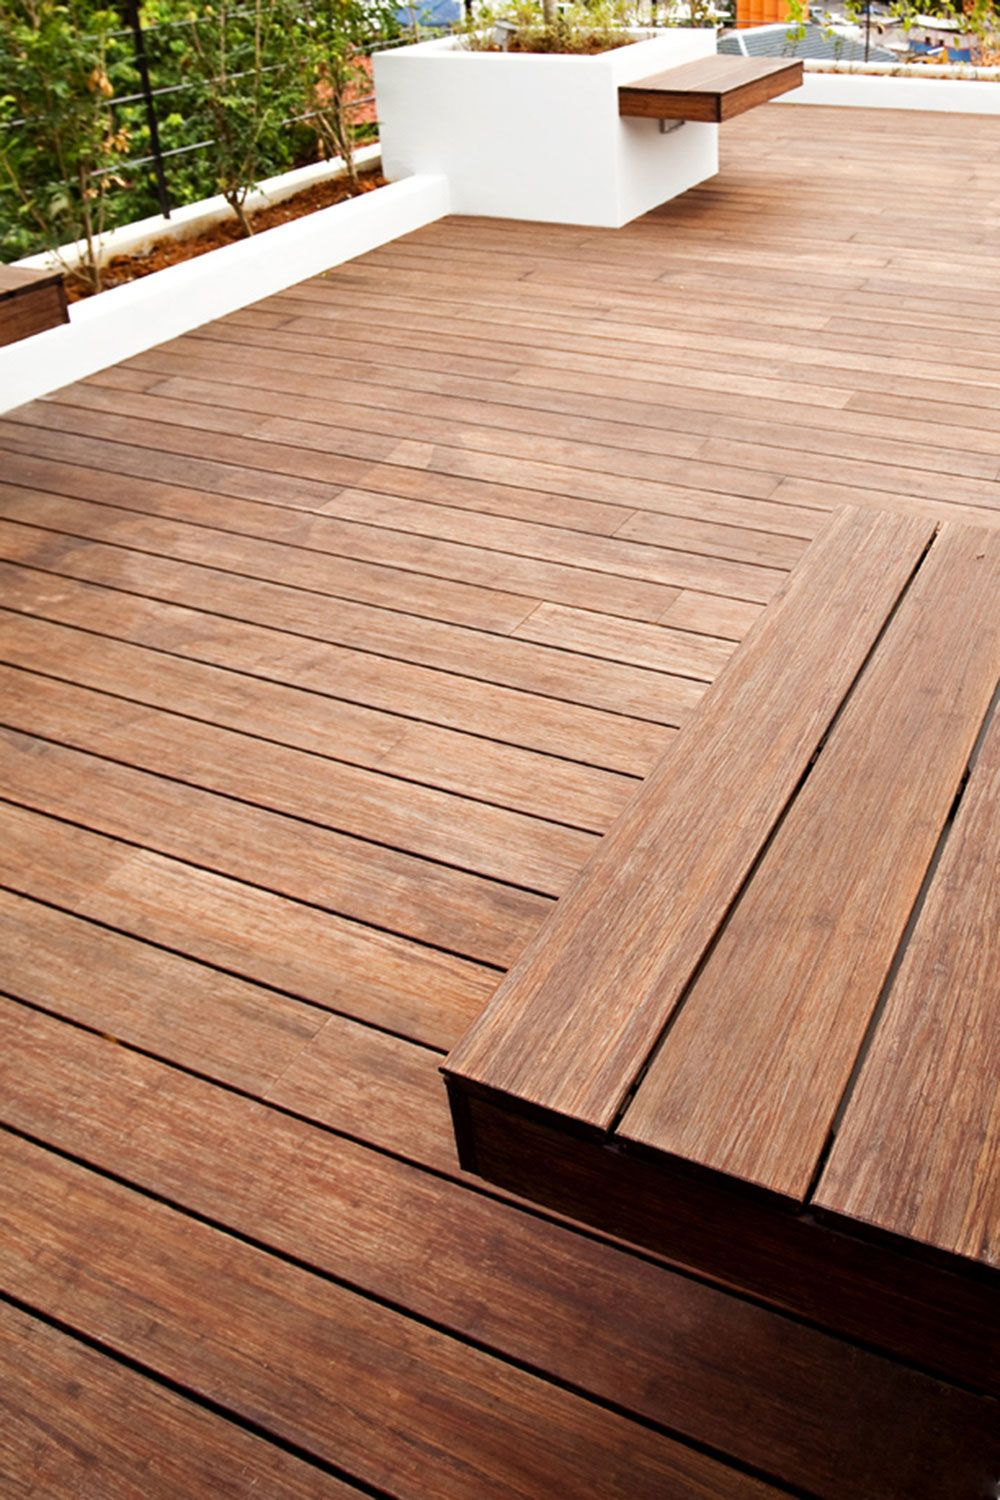 Bamboo decking from dasso XTR | DassoXTR Decking in 2019